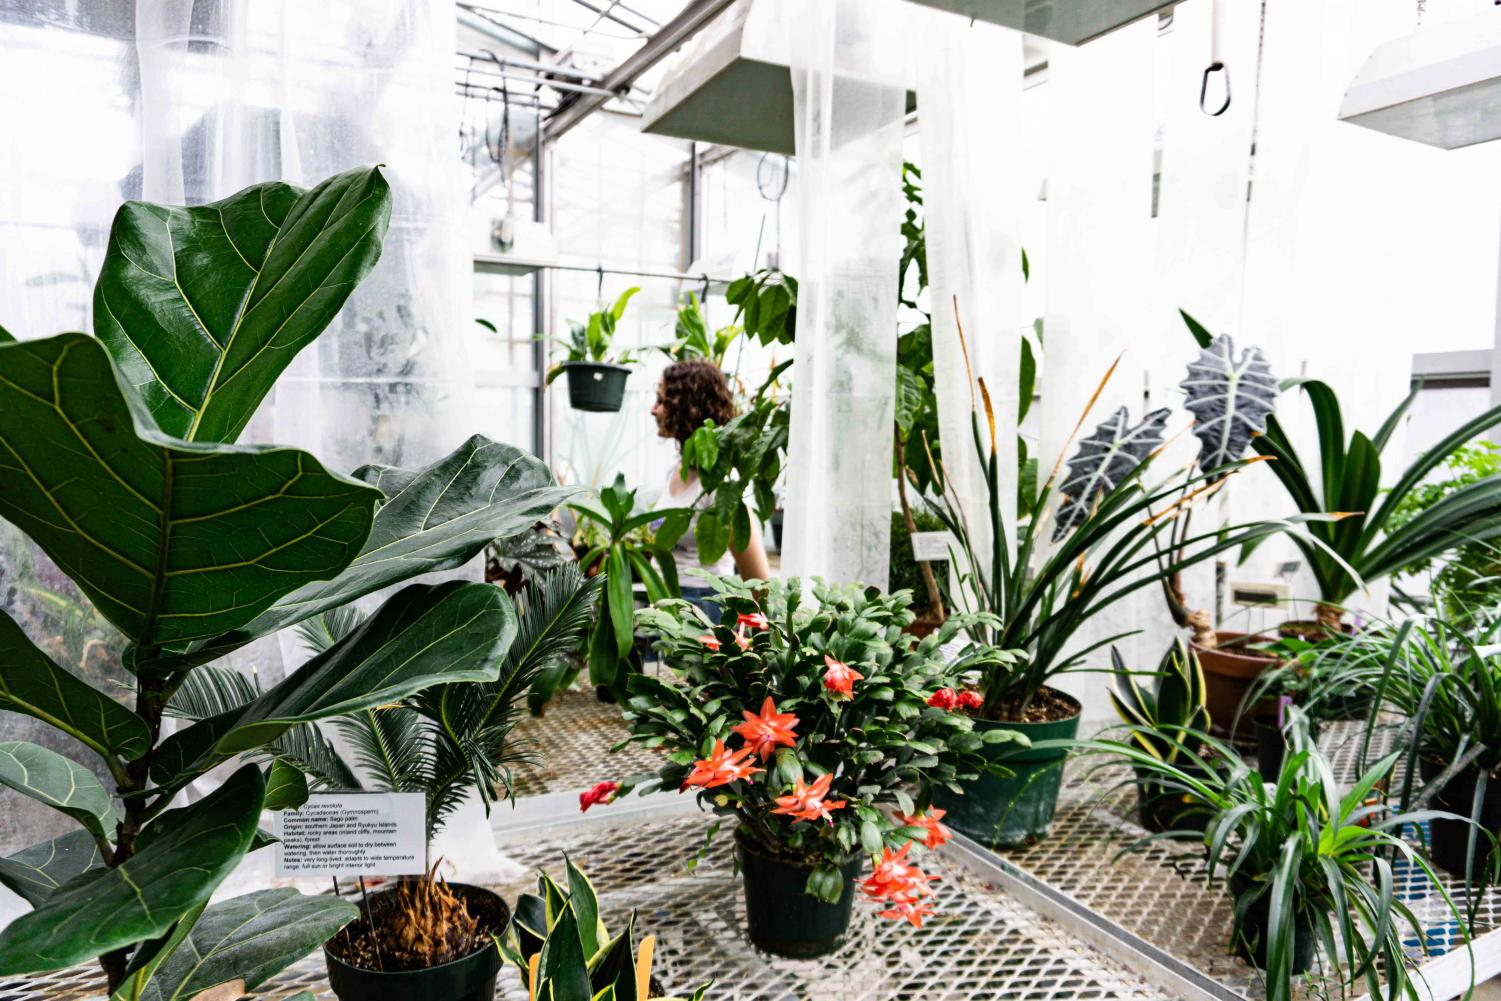 The greenhouse open house, which occurred on Feb. 7, was curated by biology students and professors with the intent to display the educational importance of the greenhouse. Photos by Amara Garibyan